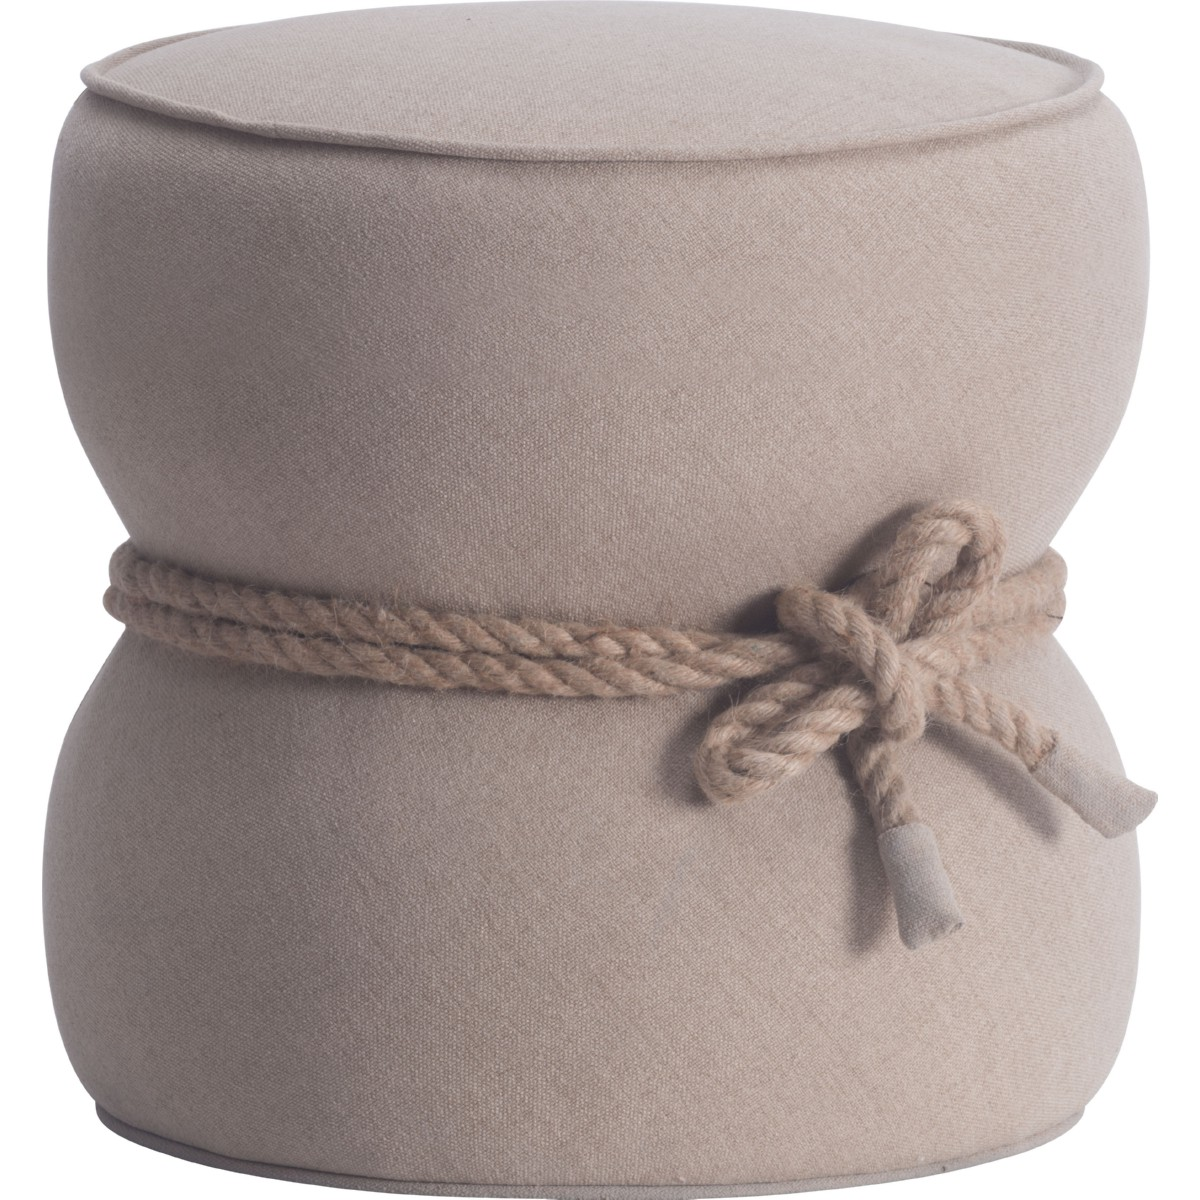 check out a6c54 d1bff Tubby Ottoman in Beige Fabric in Hourglass Shape w/ Nautical Rope Trim by  Zuo